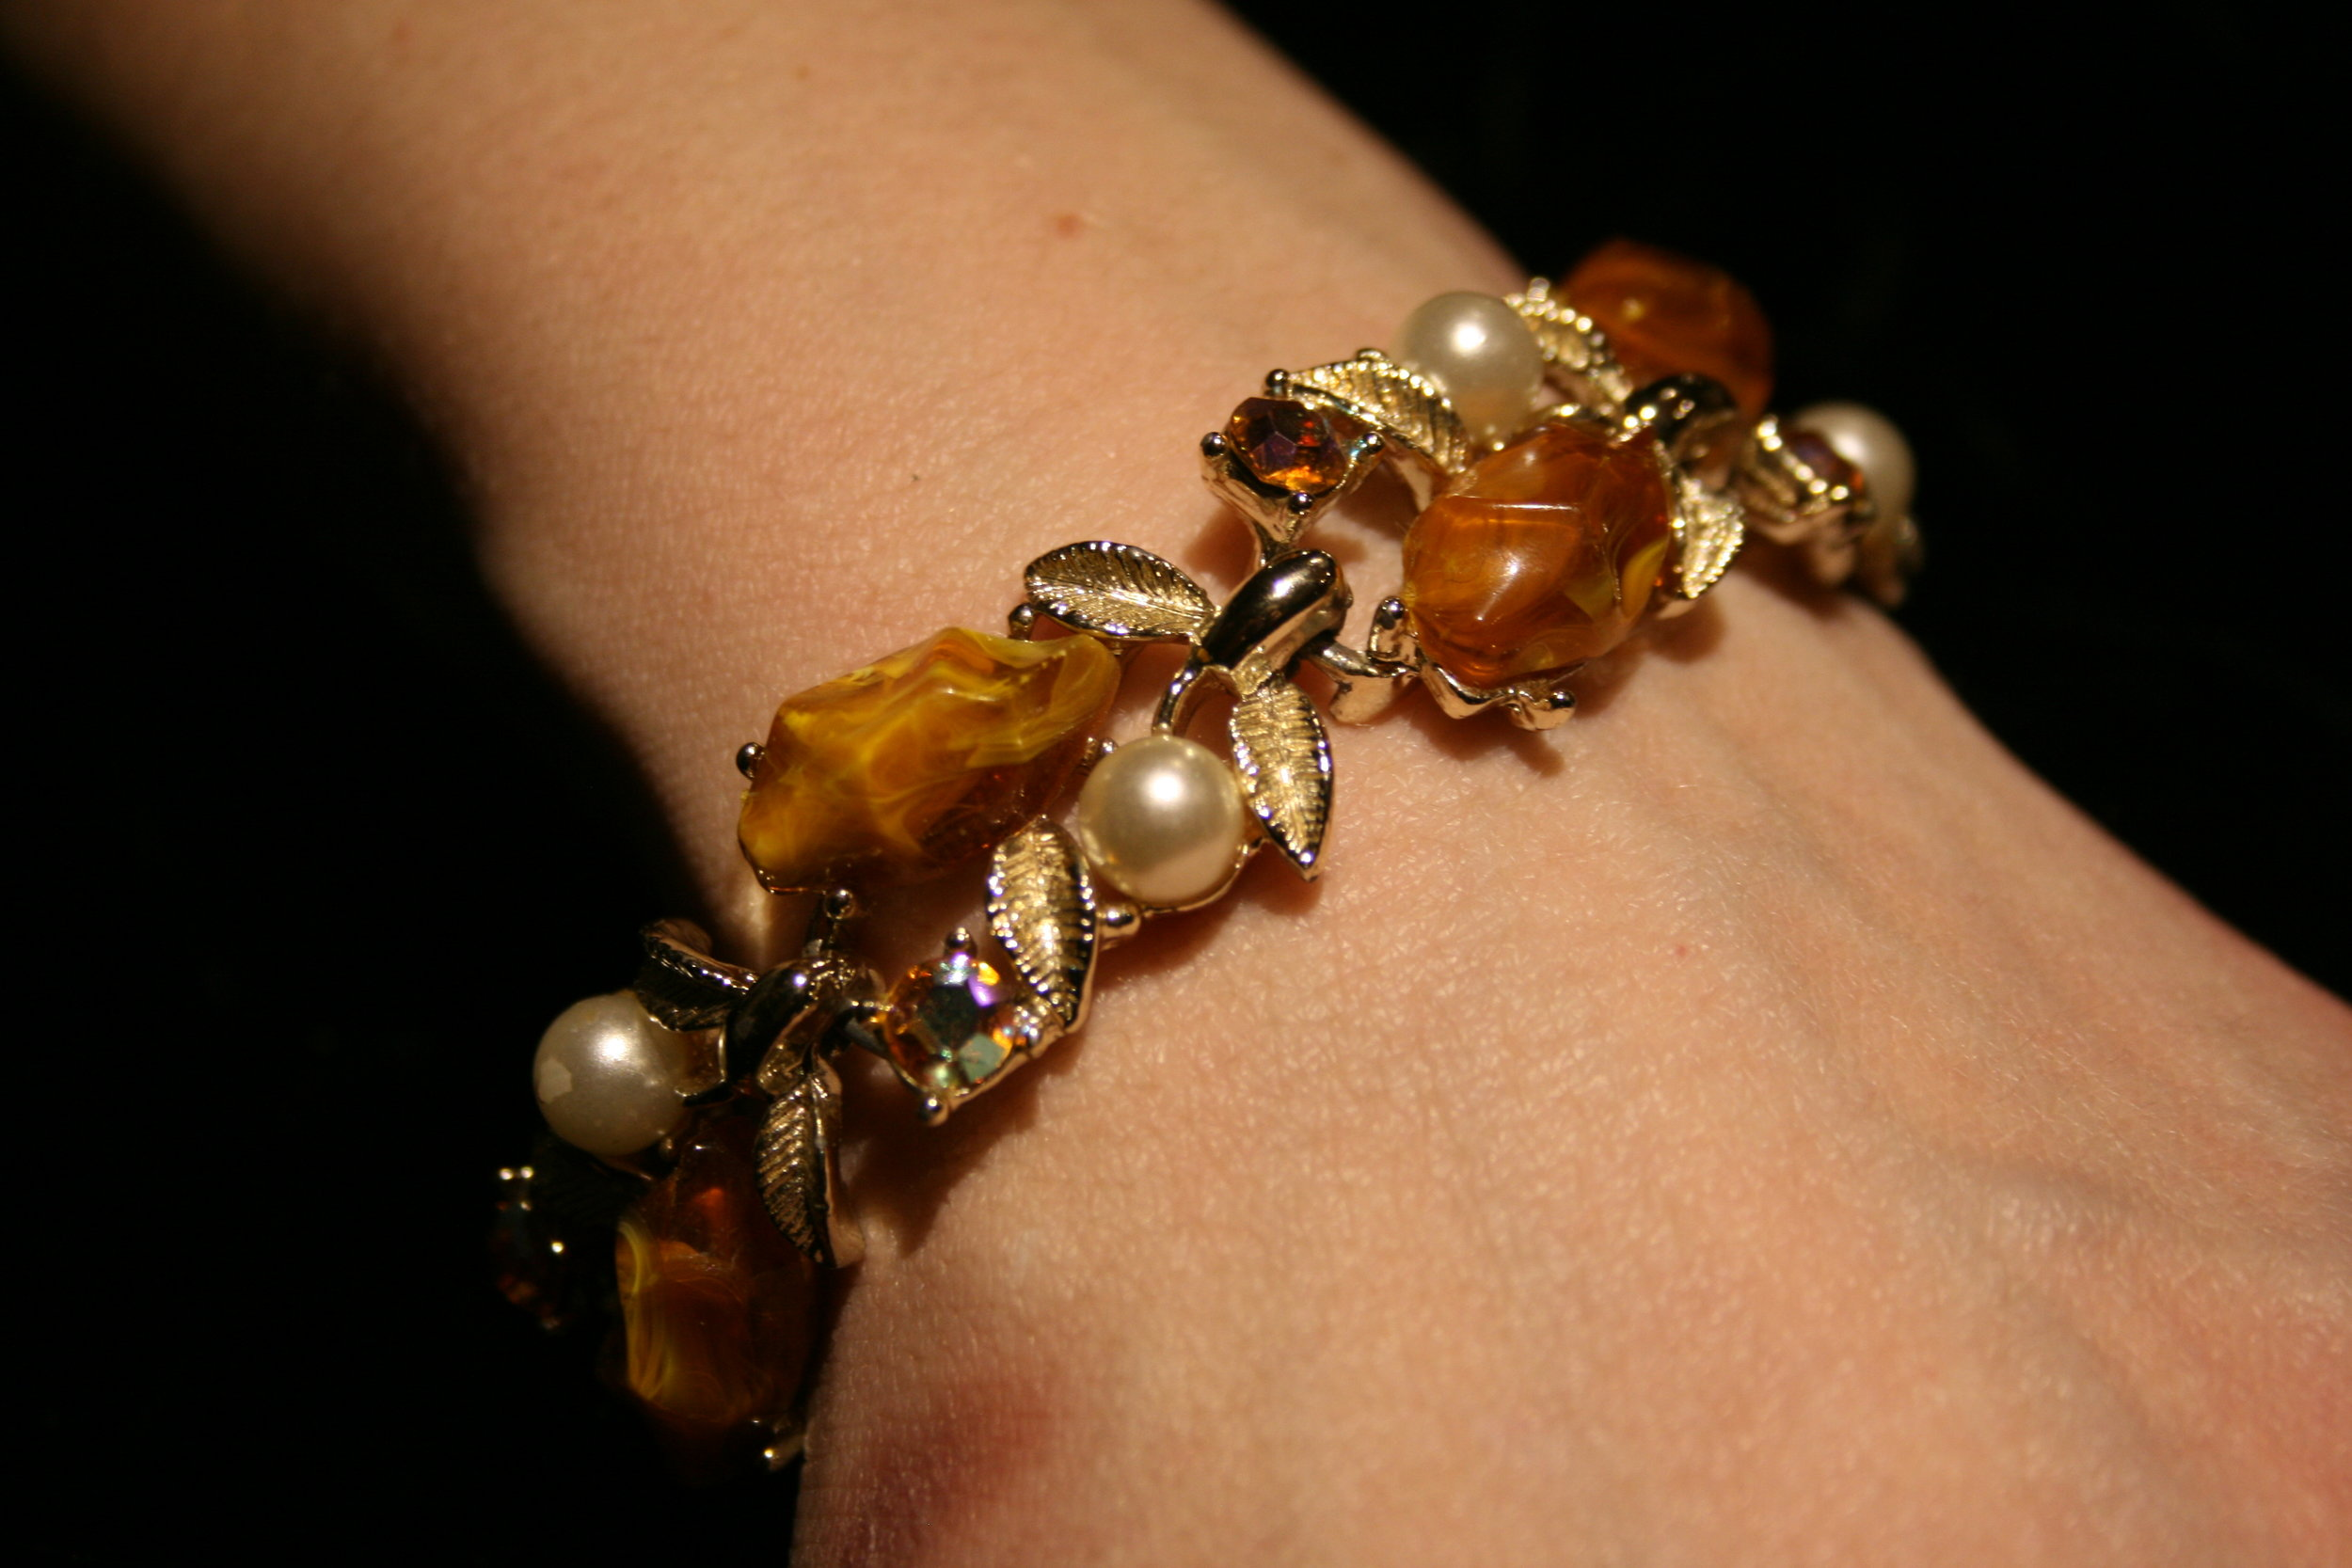 bracelet made of pearls, beads and gold